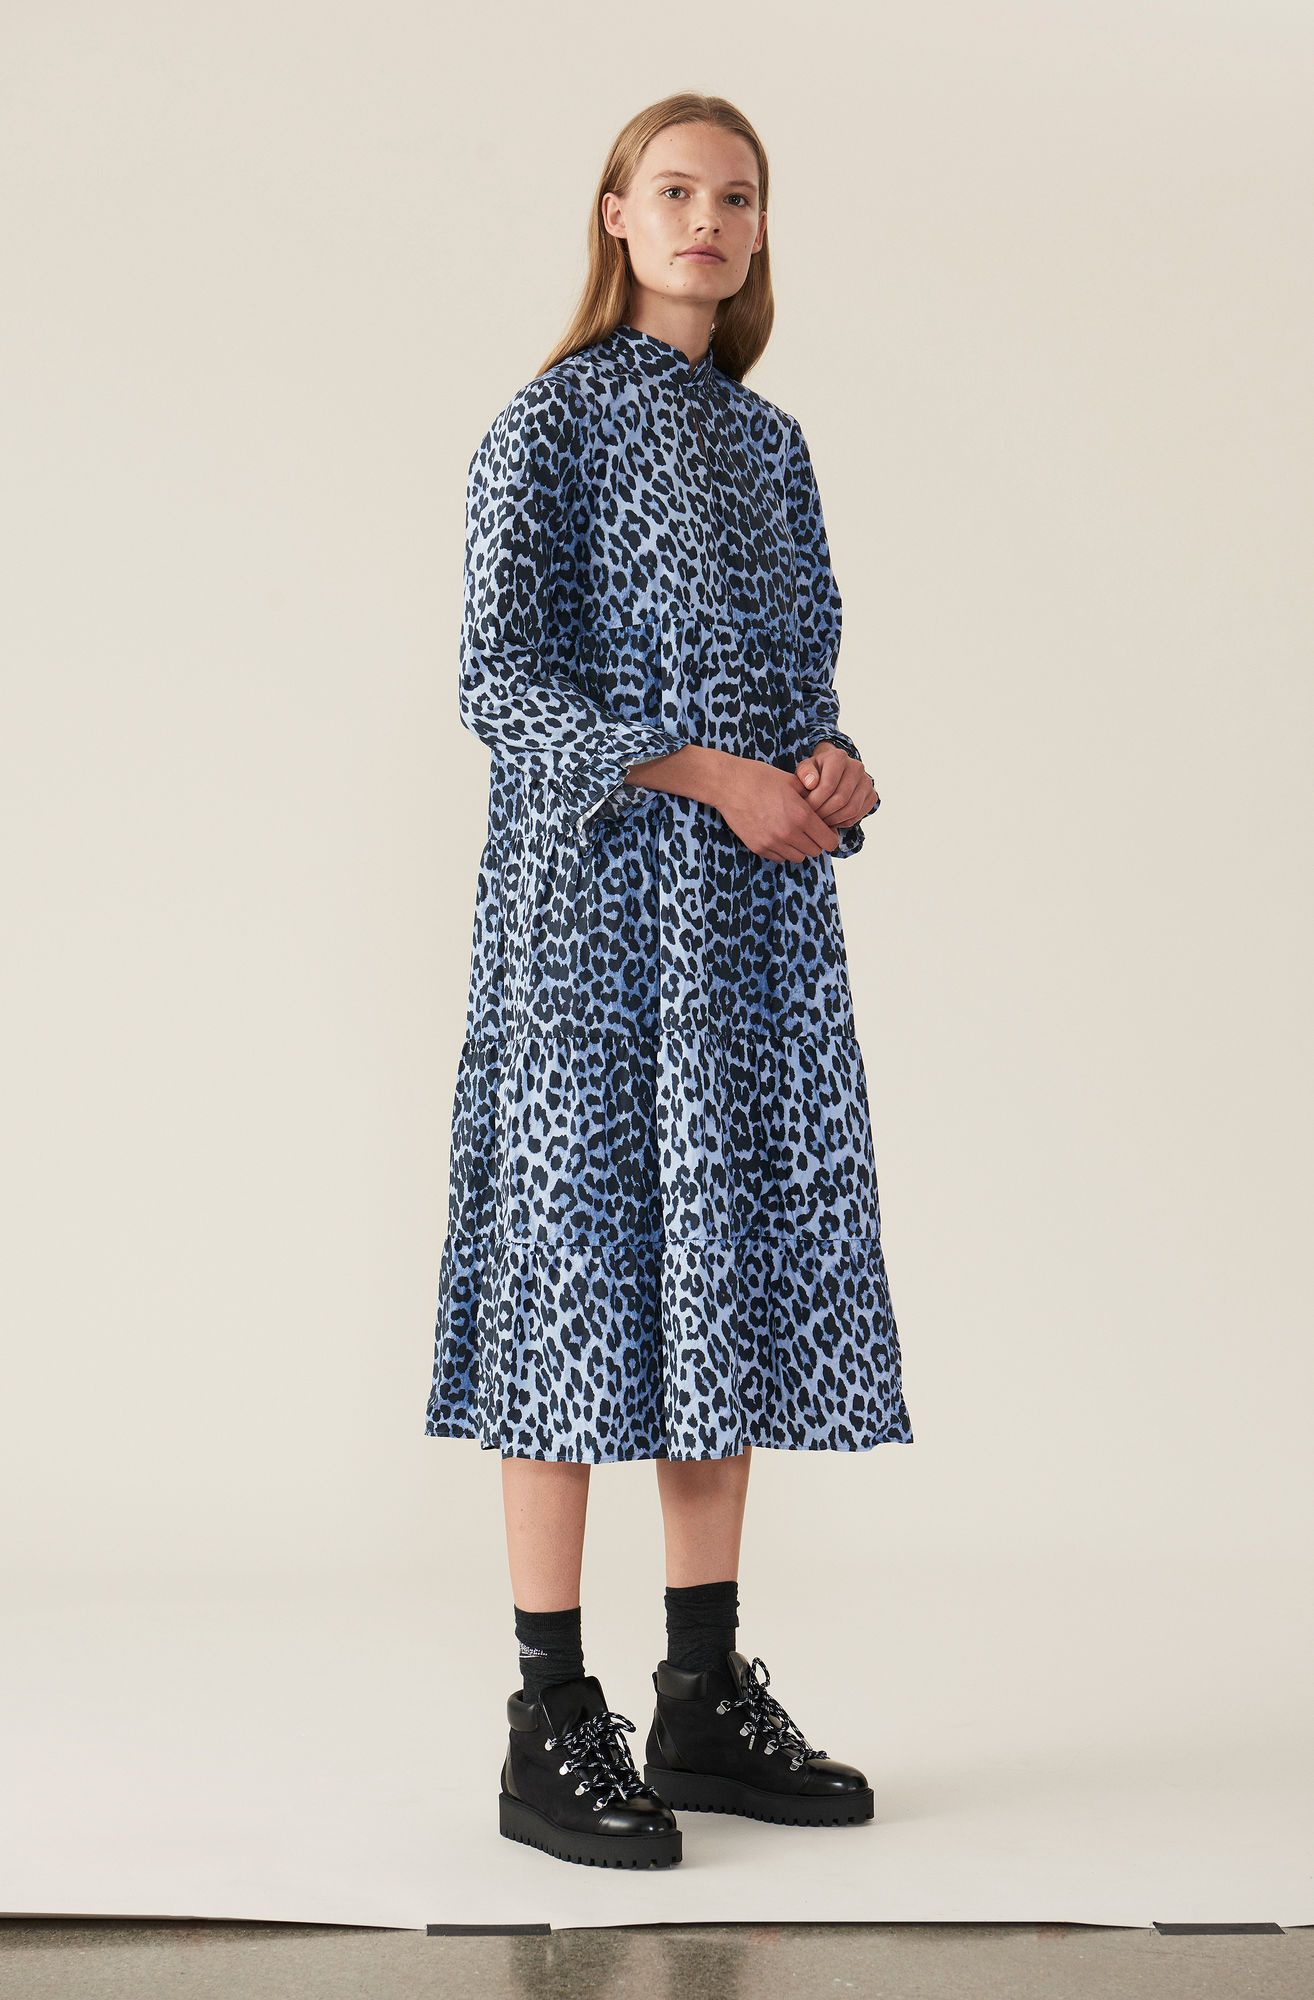 cf83899c Blue leopard print turtleneck maxi dress with ruffle trim sleeves and  tiered peplum hem. This